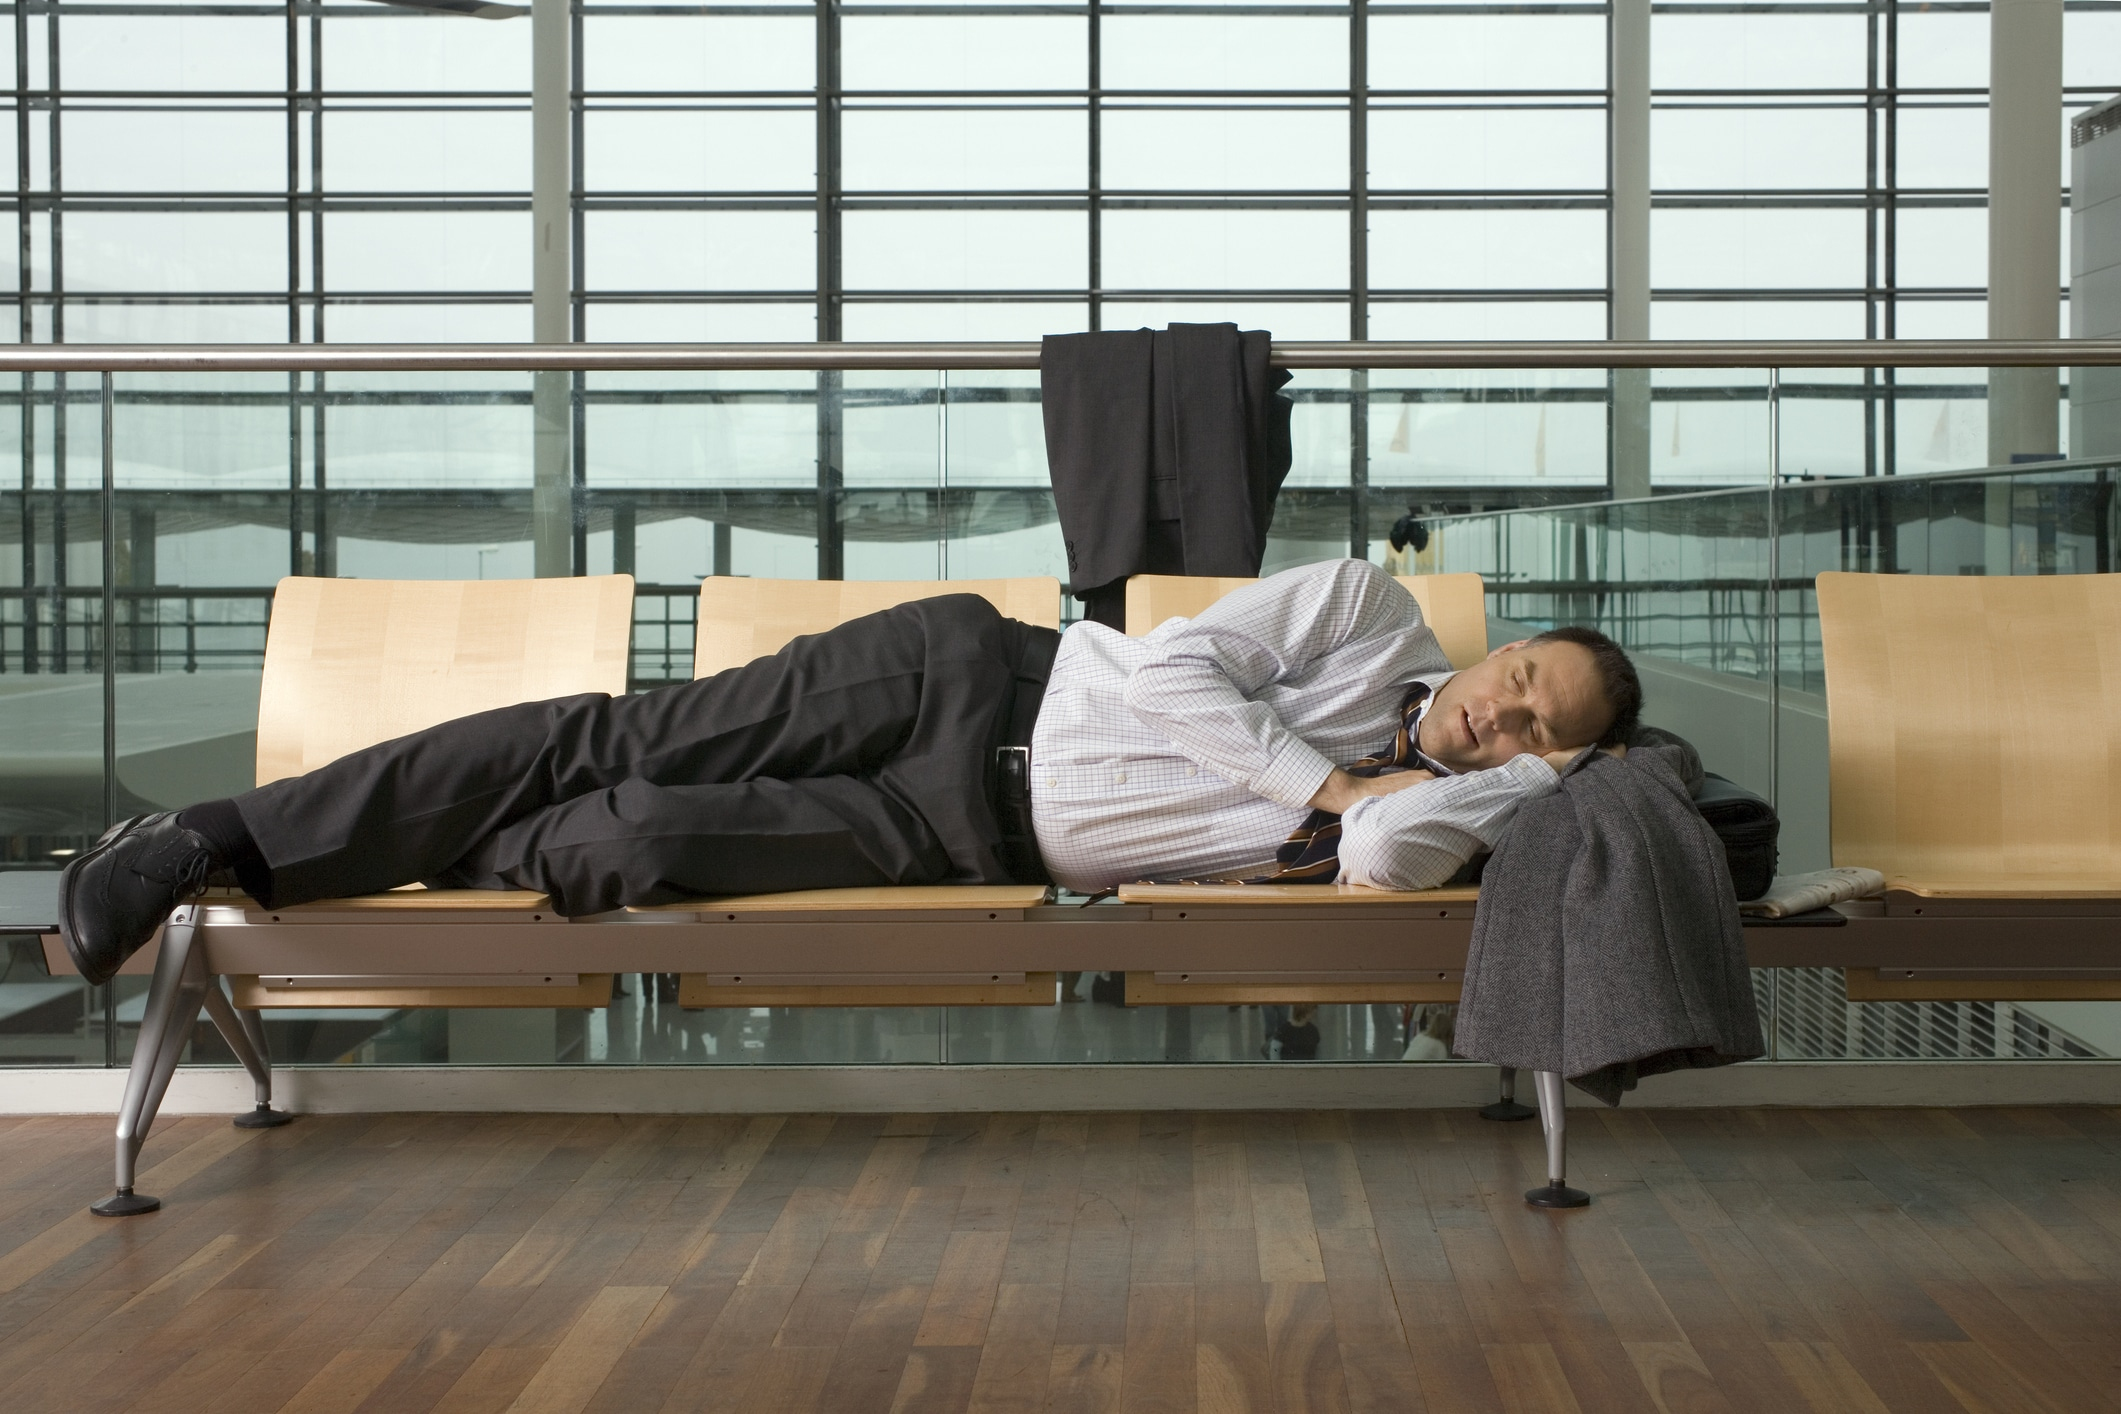 Road warrior hacks: 4 business travel tips for the regular corporate traveller